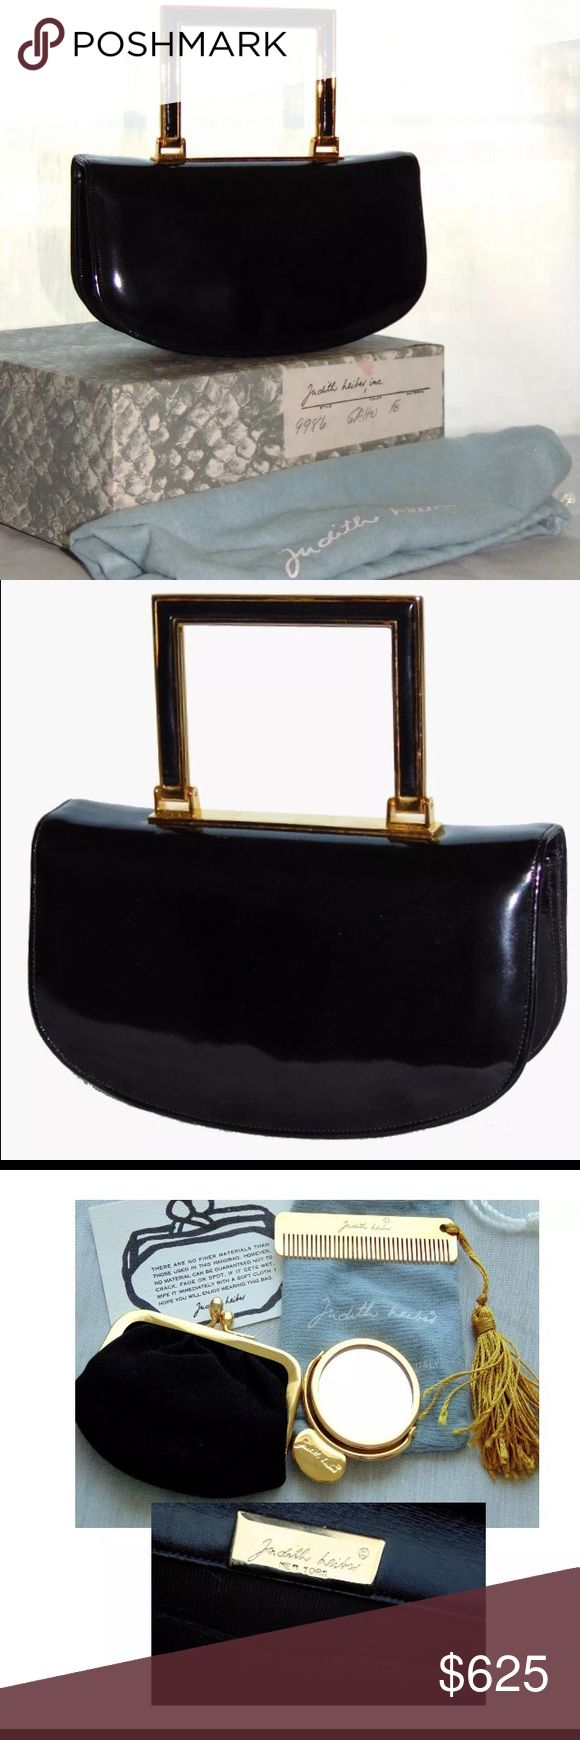 """Judith Leiber Black Patent Leather Evening Bag In excellent condition, it looks like it was barely, if ever, used.  Comes with dust cover, box and all accessories.  Measures 7""""L x 7""""H x 4""""D with a 3"""" handle drop. judith leiber Bags Mini Bags"""